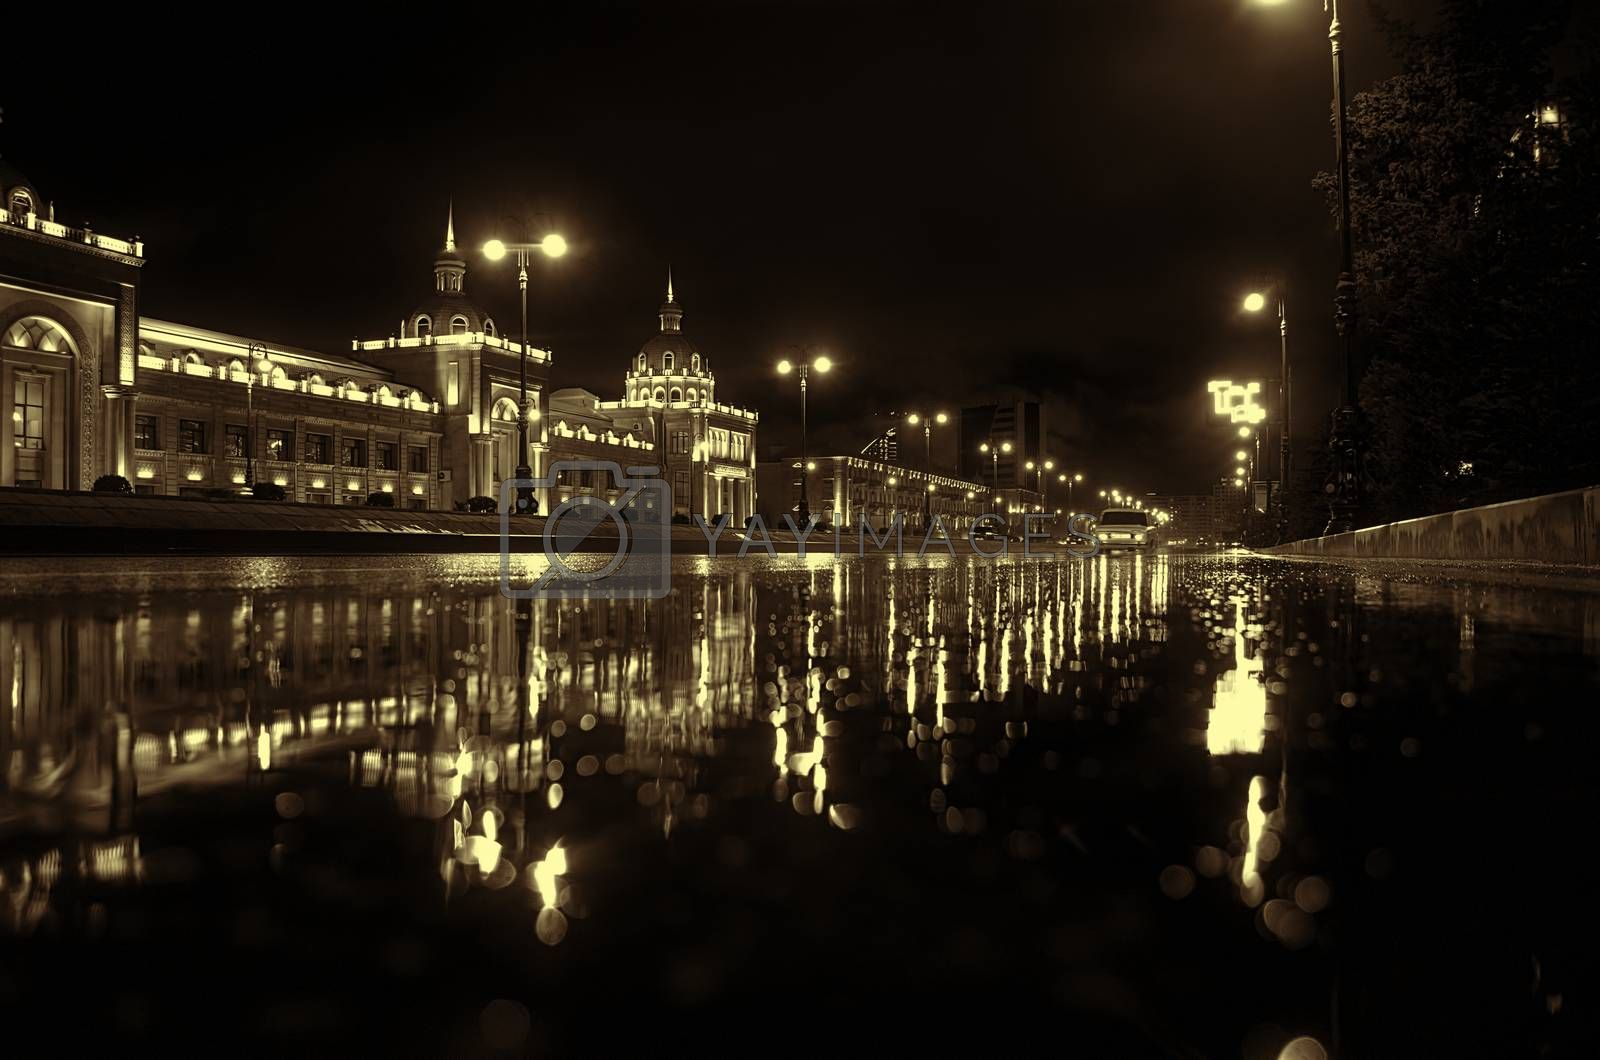 Rainy night in the Baku city, the cars headlights shine through the mist. Close up view from the level of the dividing line, selective focus